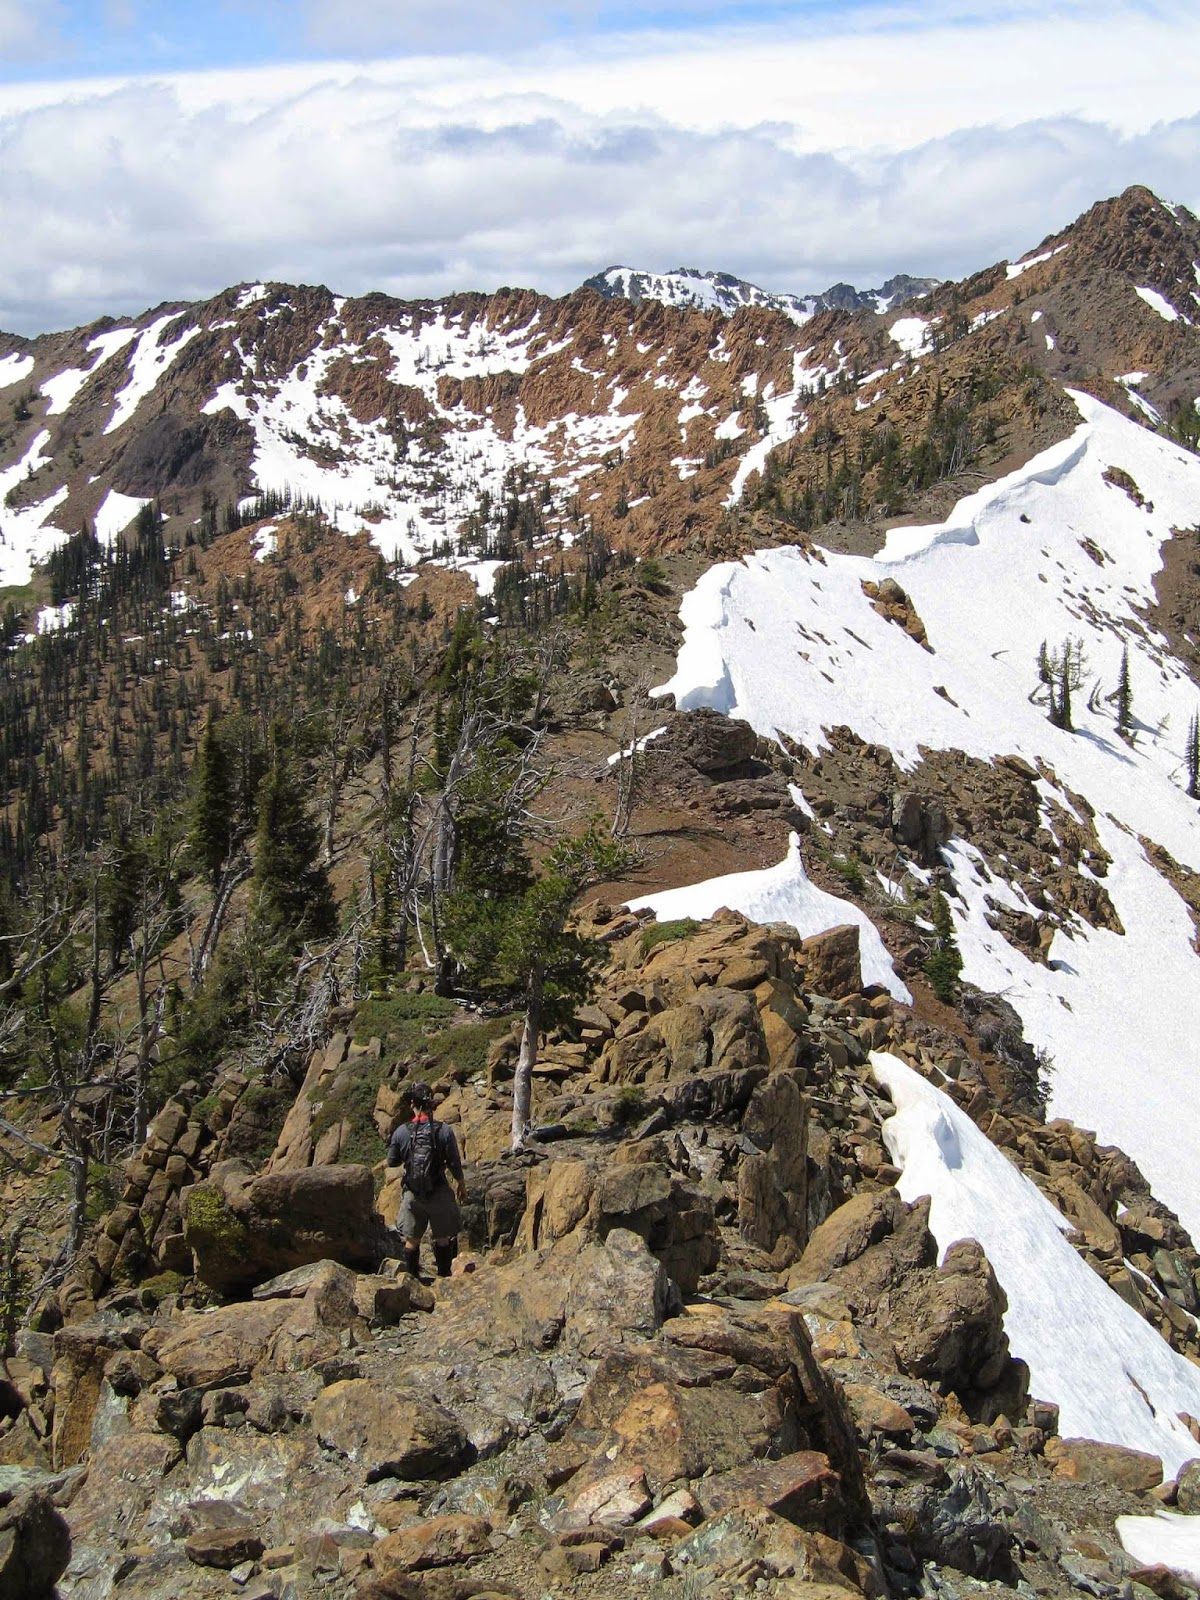 Ridgeline towards Bean Peak